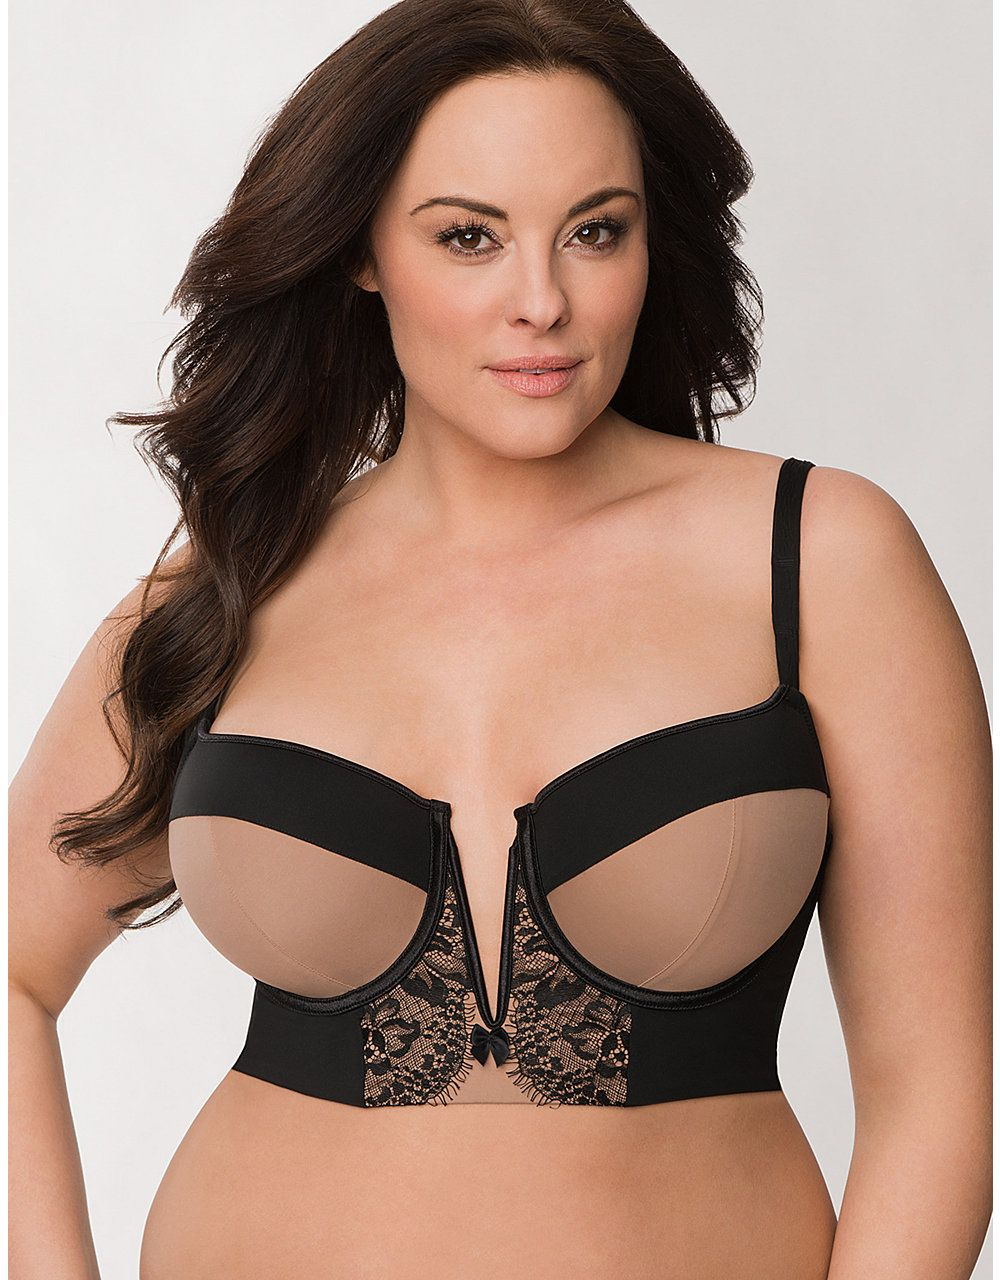 da2cd683d8 Plus Size Lace Long Line Demi Bra by Cacique